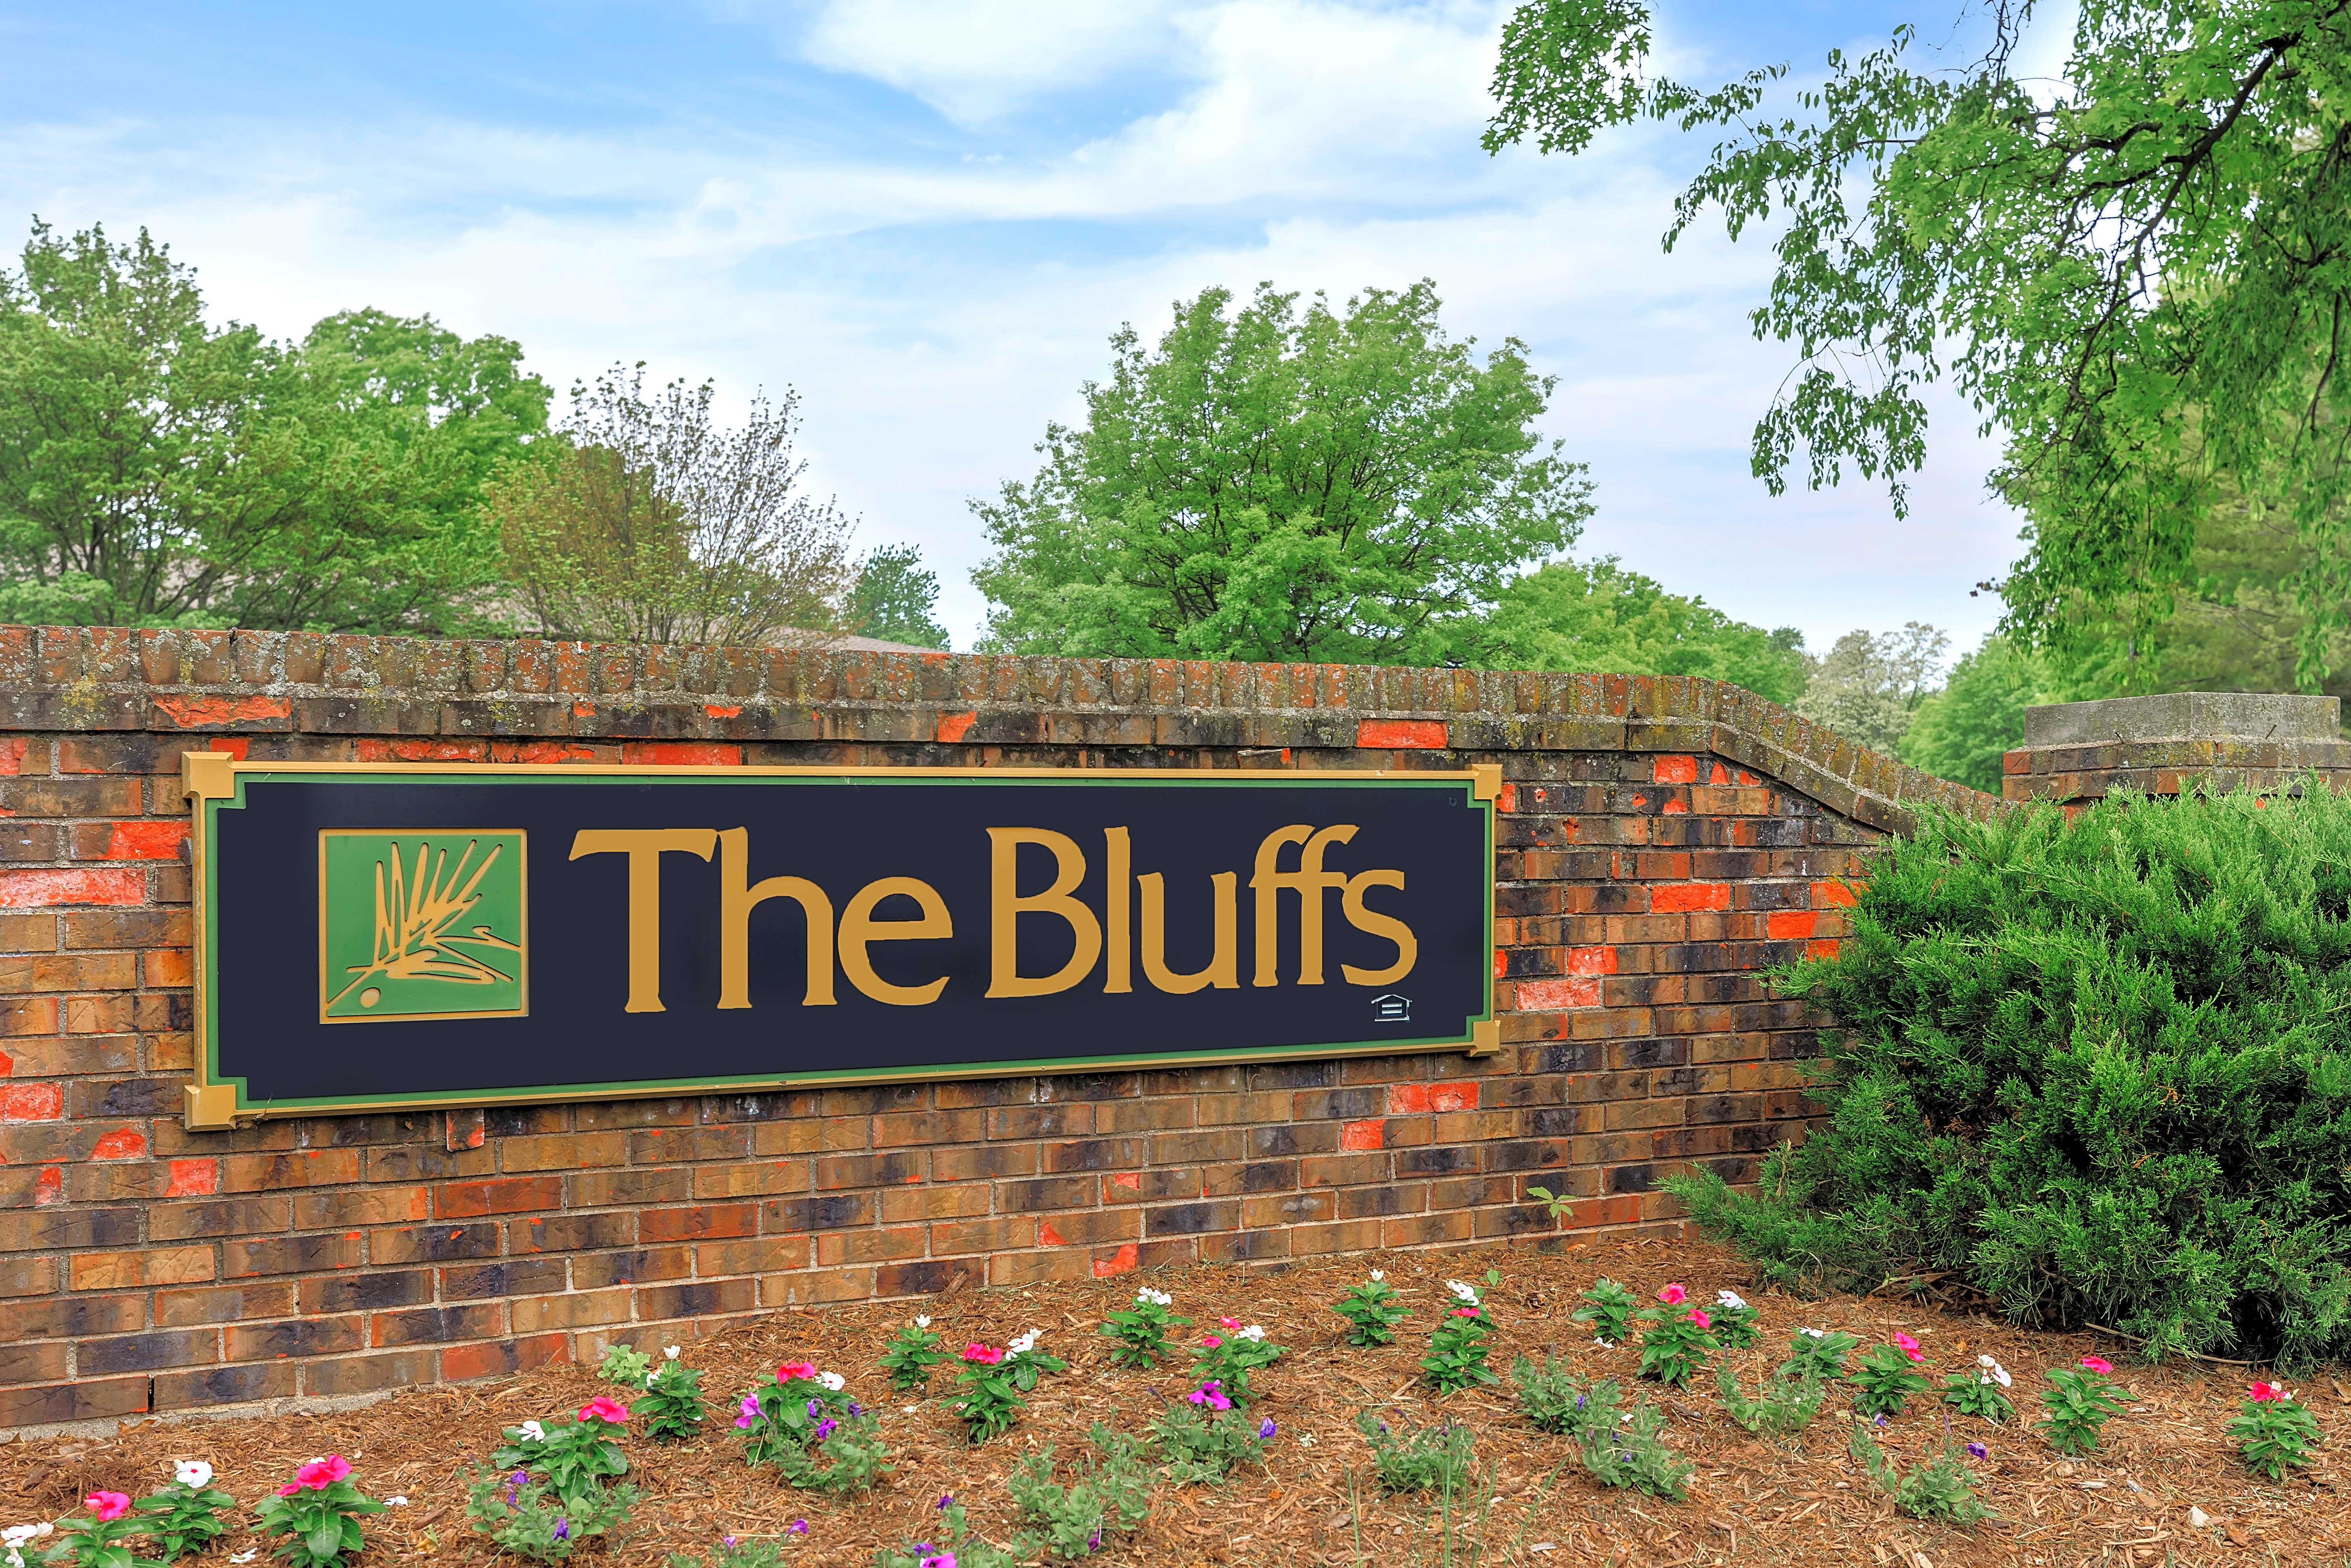 Apartments Near Tricoci University of Beauty Culture-Lafayette The Bluffs for Tricoci University of Beauty Culture-Lafayette Students in Lafayette, IN